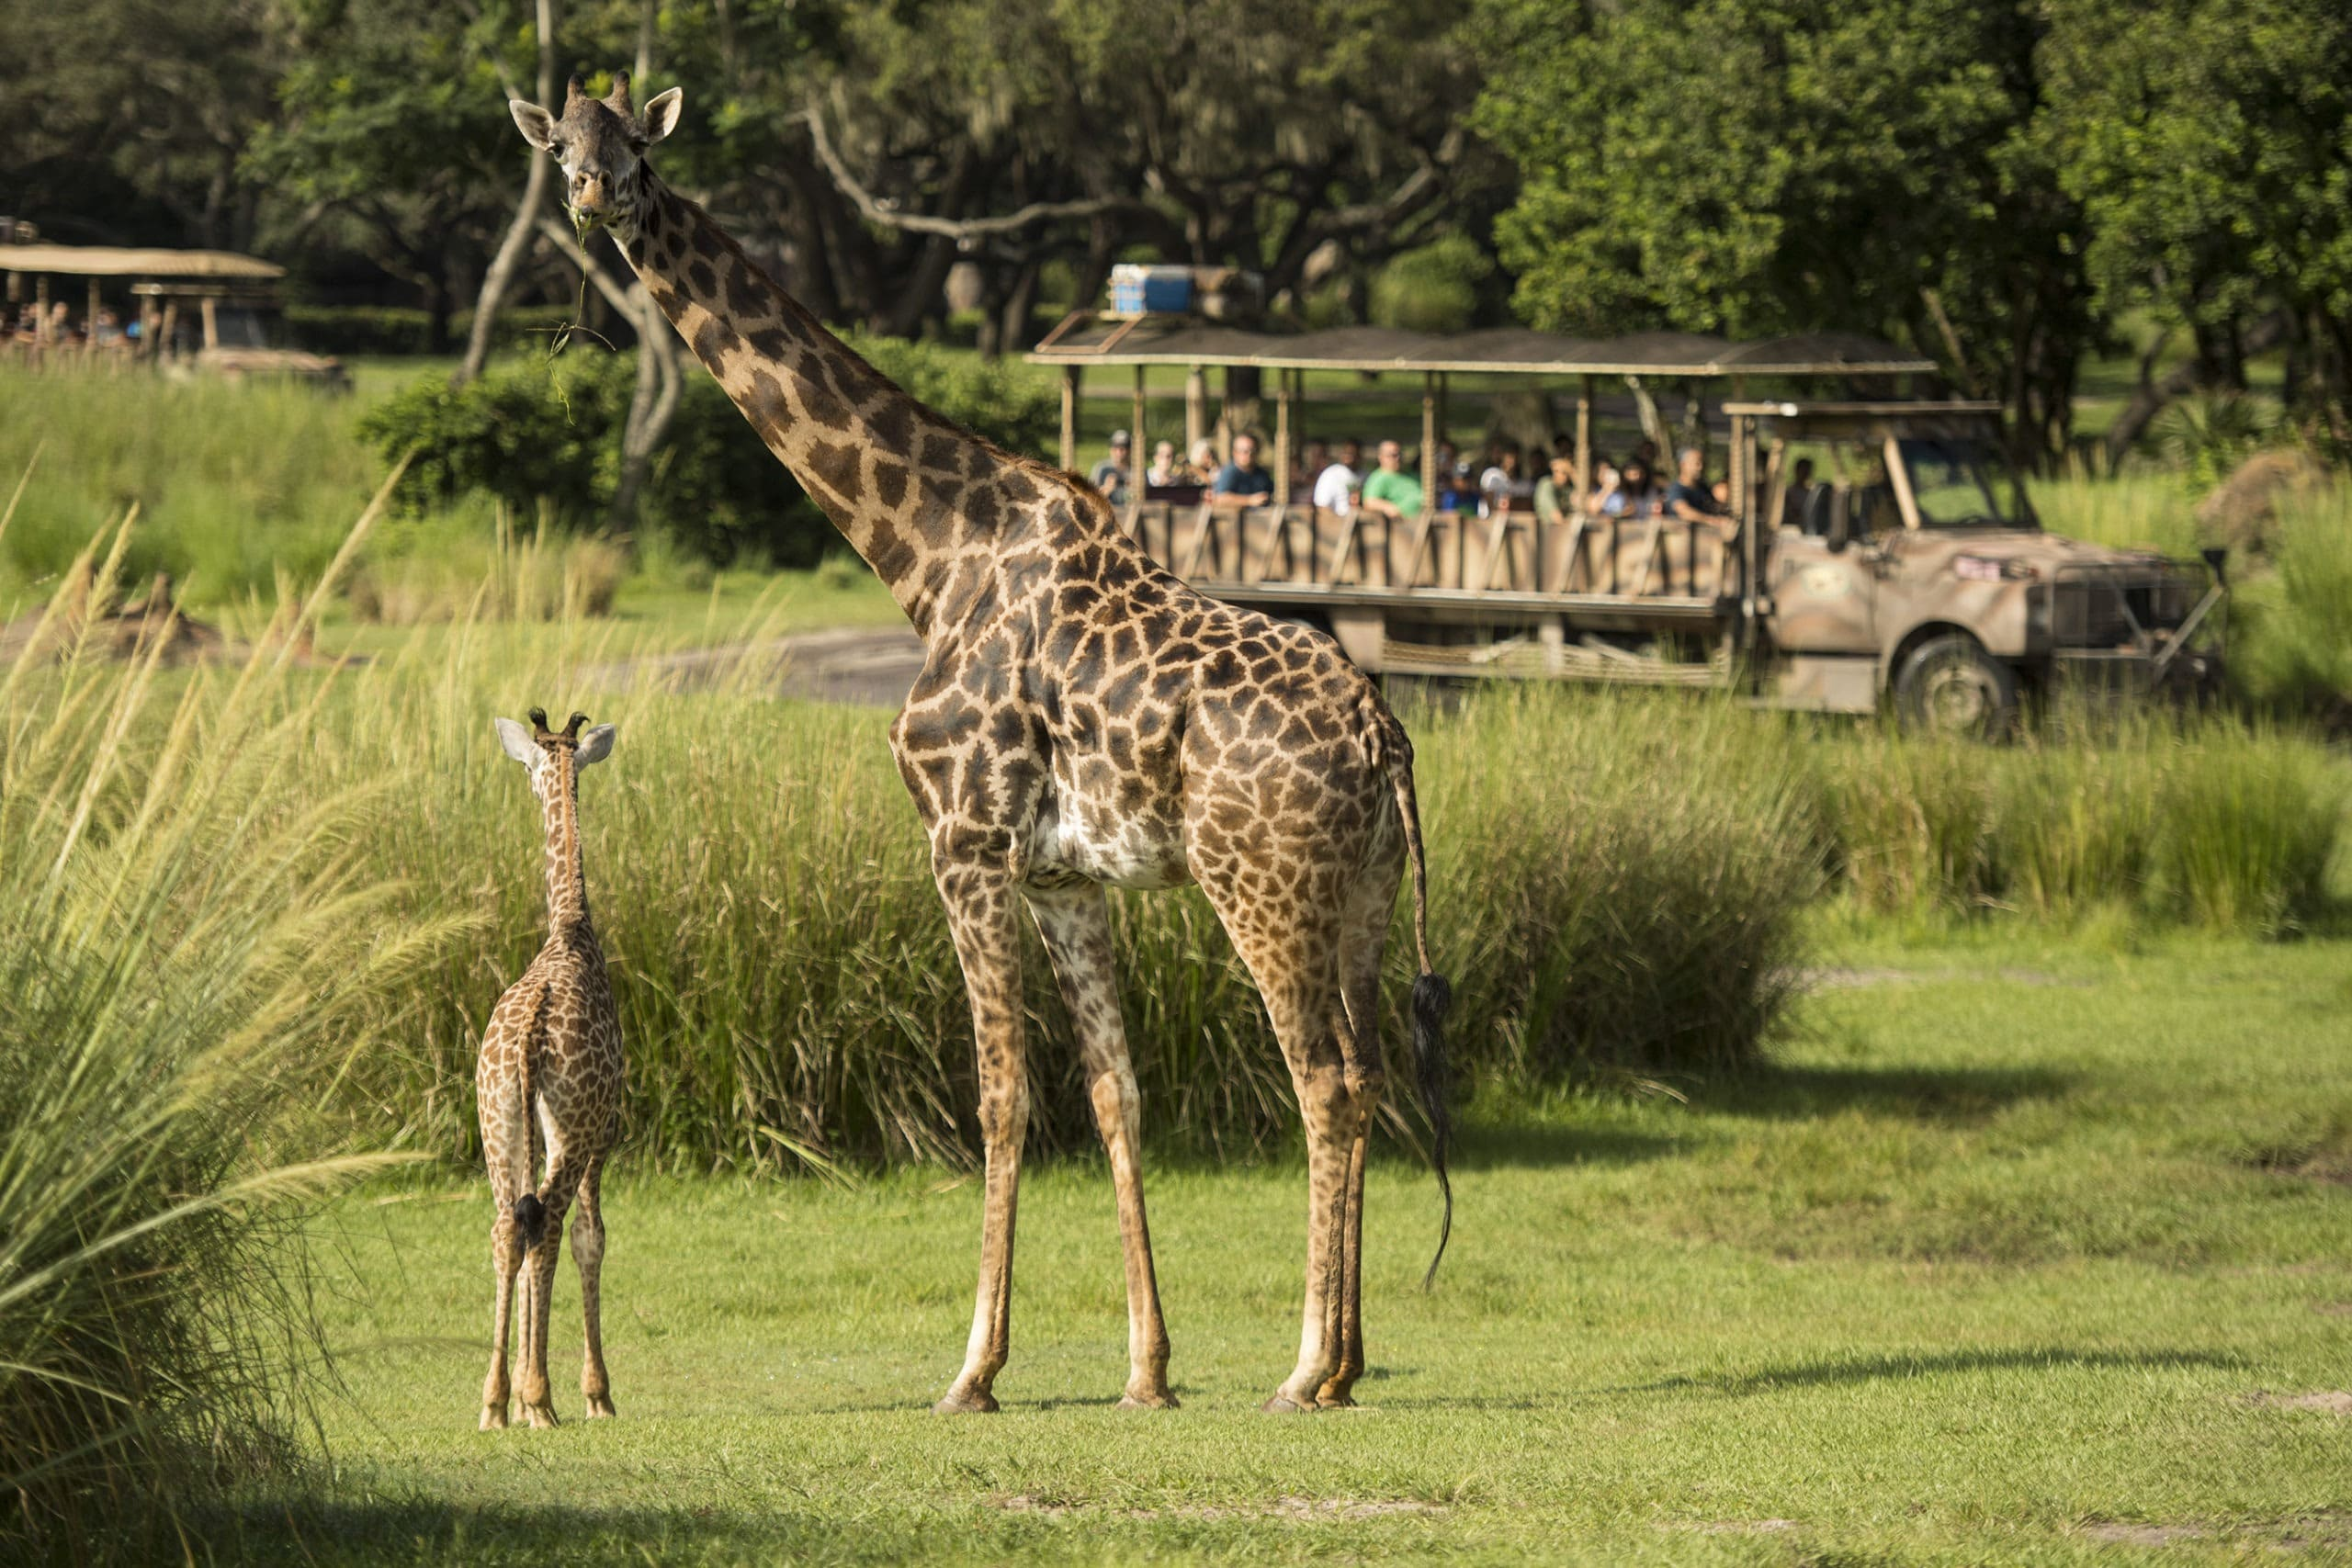 Onlookers in a safari truck admire a baby Masi giraffe and mother at Disney's Animal Kingdom.